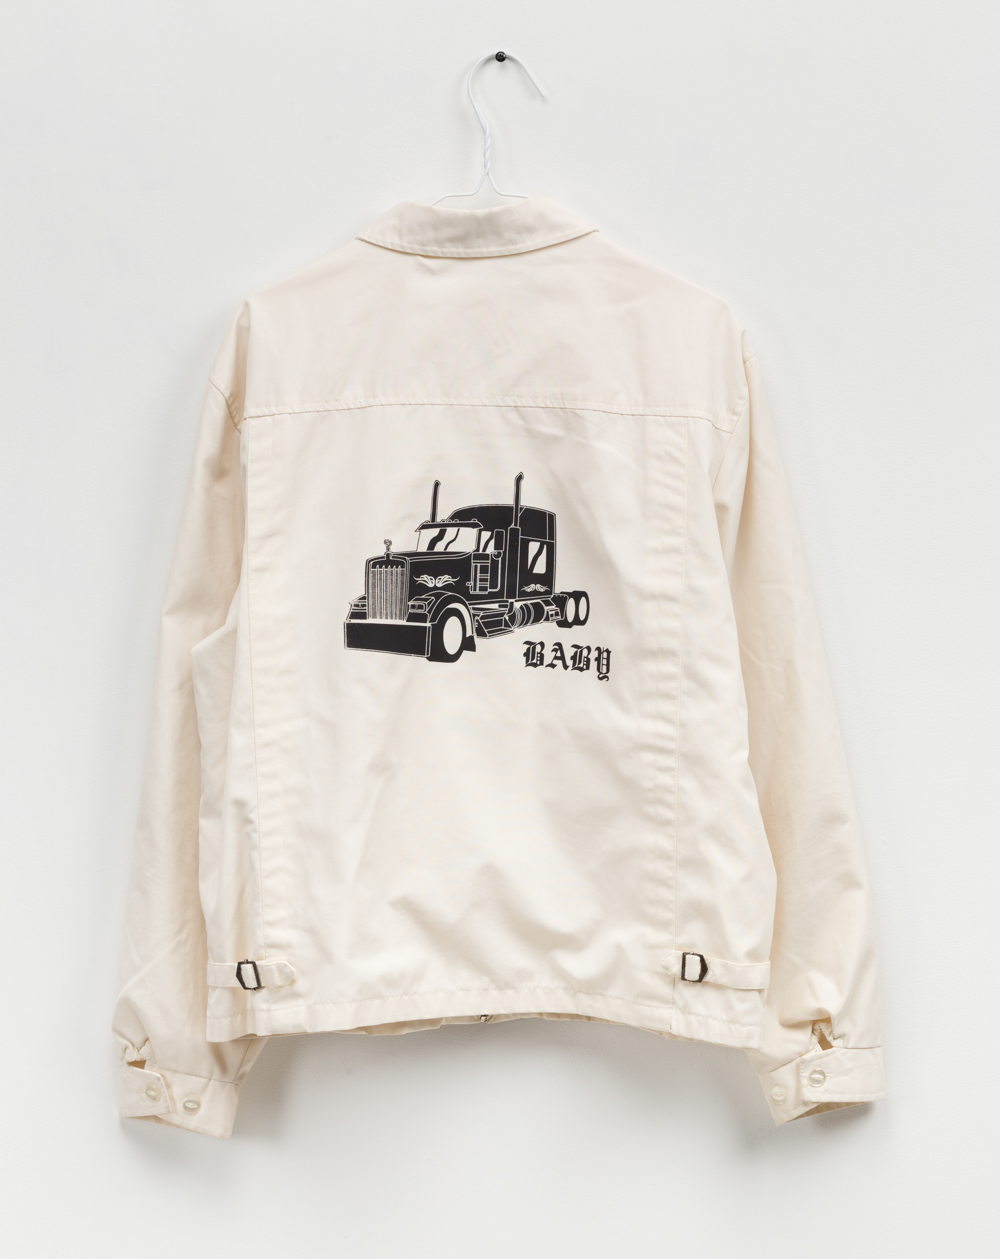 Baby Big Rig   Single-layer screenprint on found vintage jacket